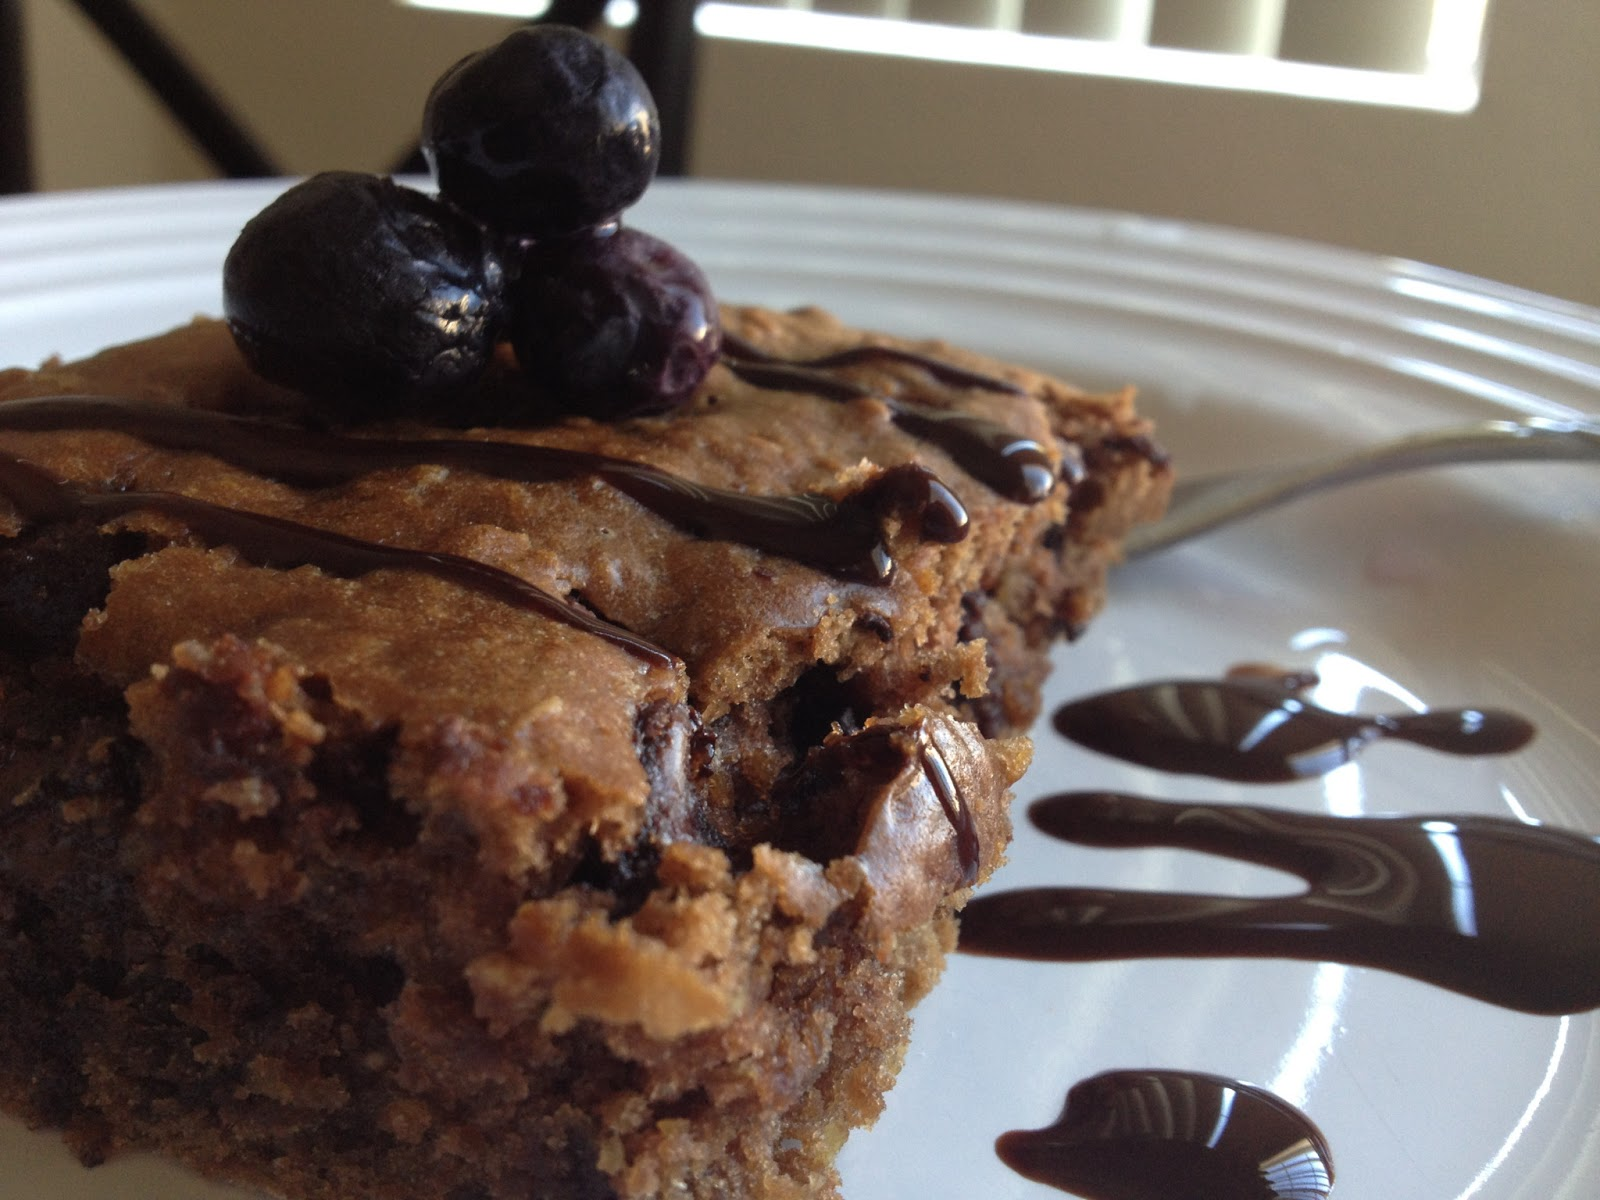 Food Hunter's Guide to Cuisine: Chocolate Chip-Oatmeal Cake